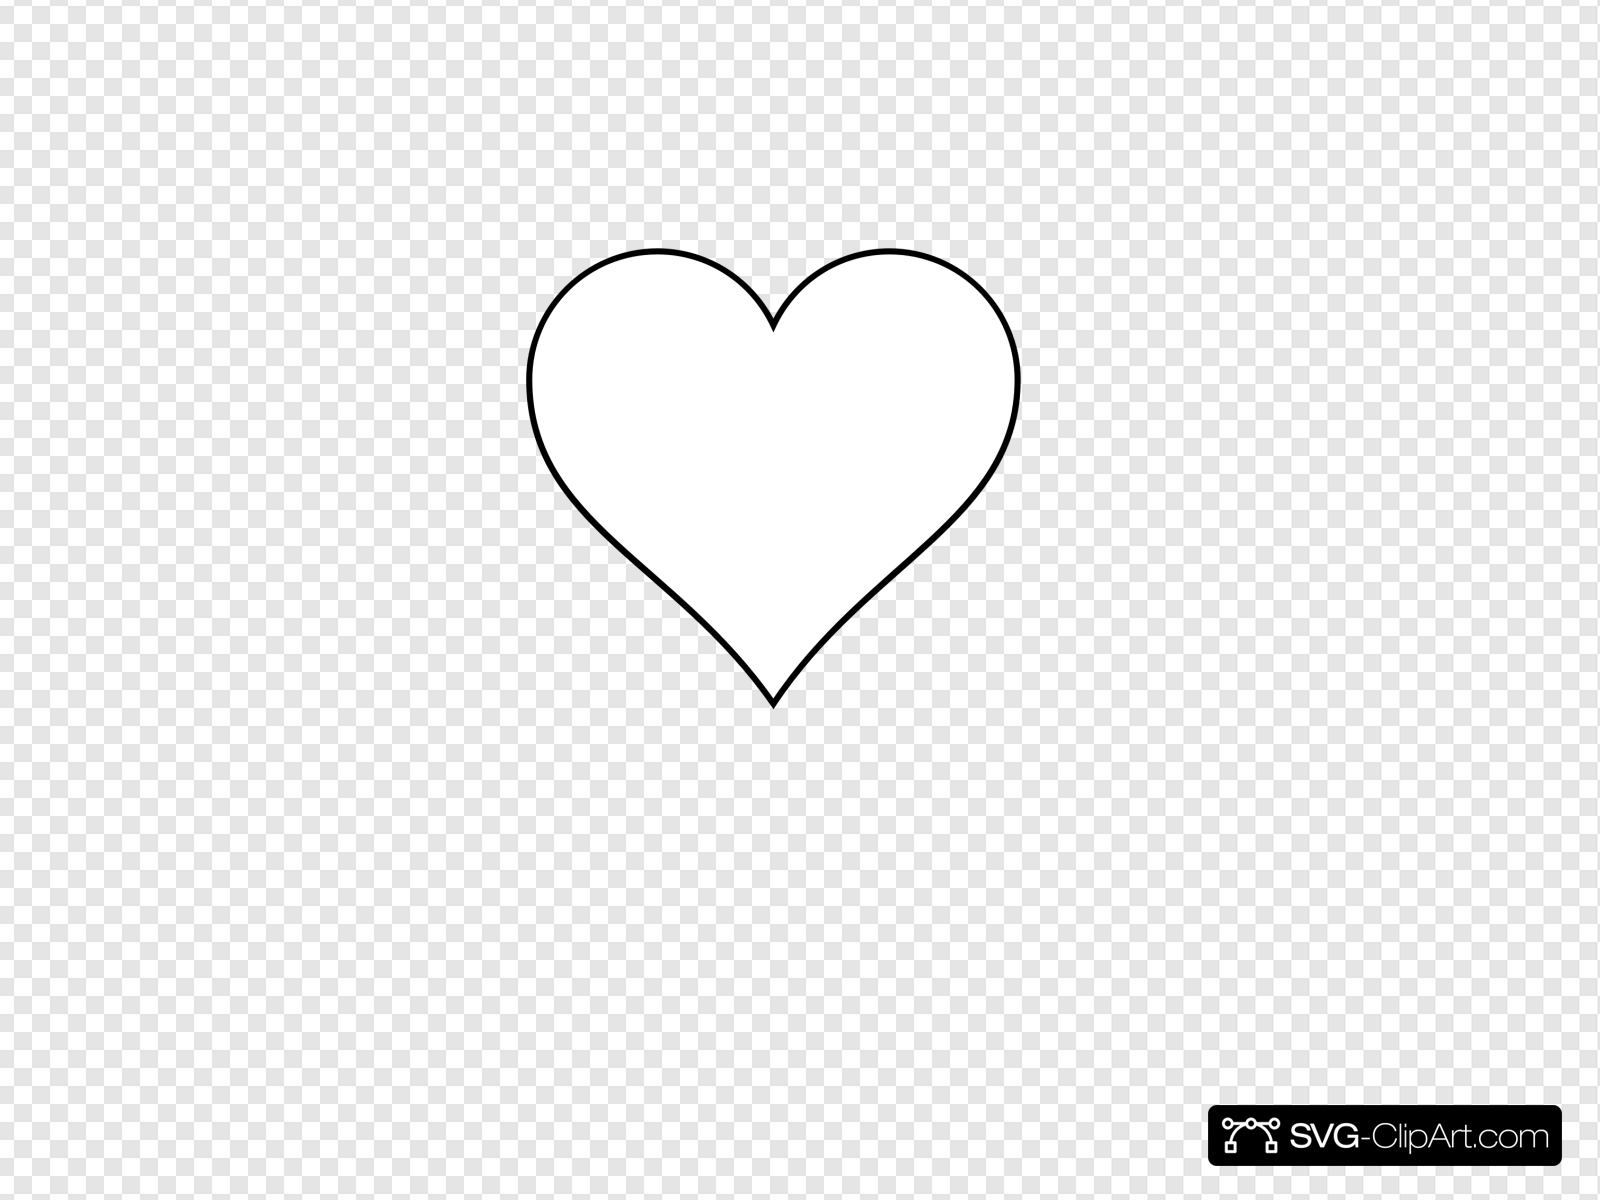 Blank Heart Clip art, Icon and SVG.